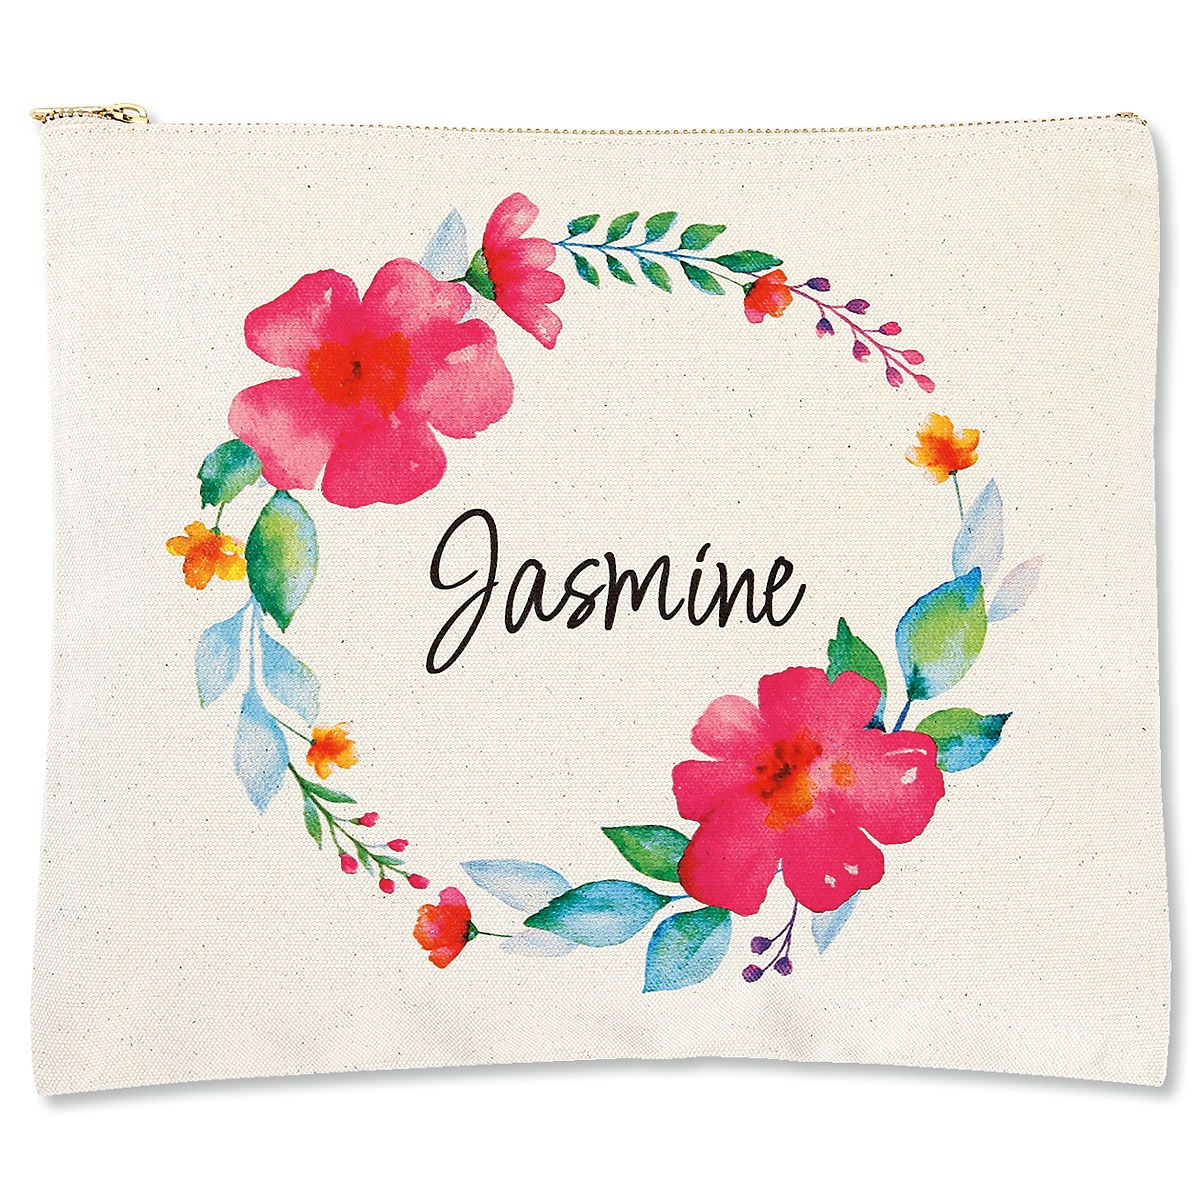 Personalized Name in Wreath Zippered Canvas Pouch